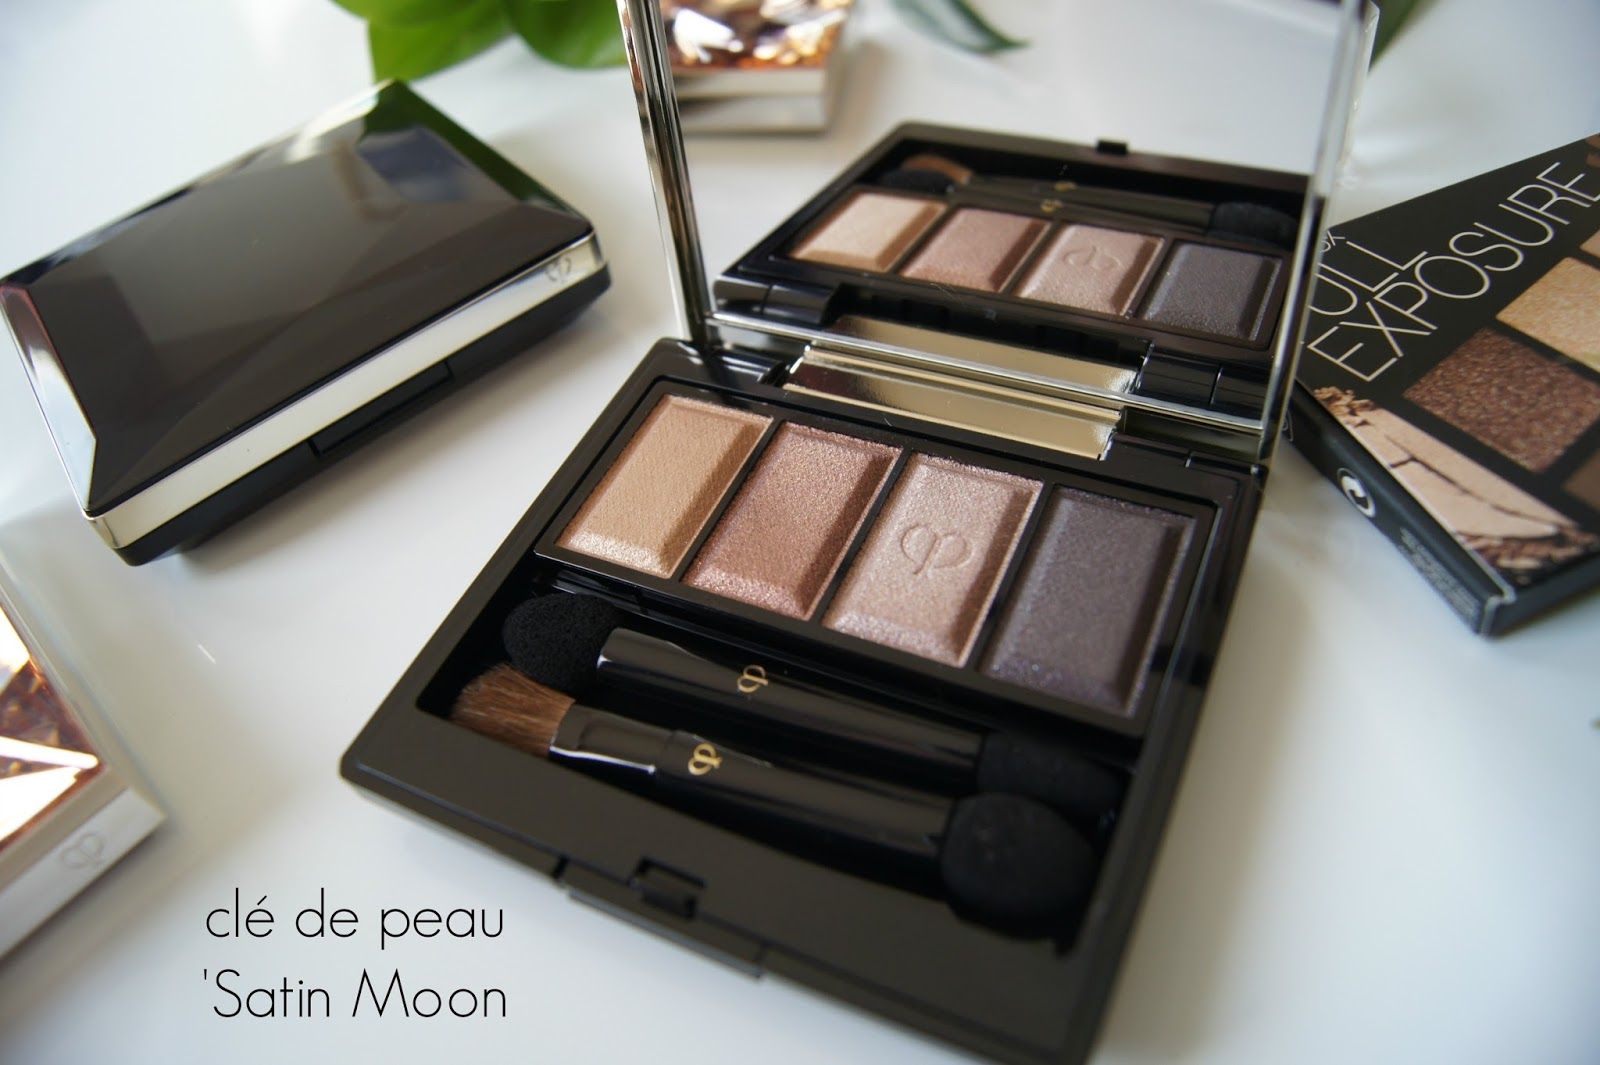 Cle De Peau Satin Moon review